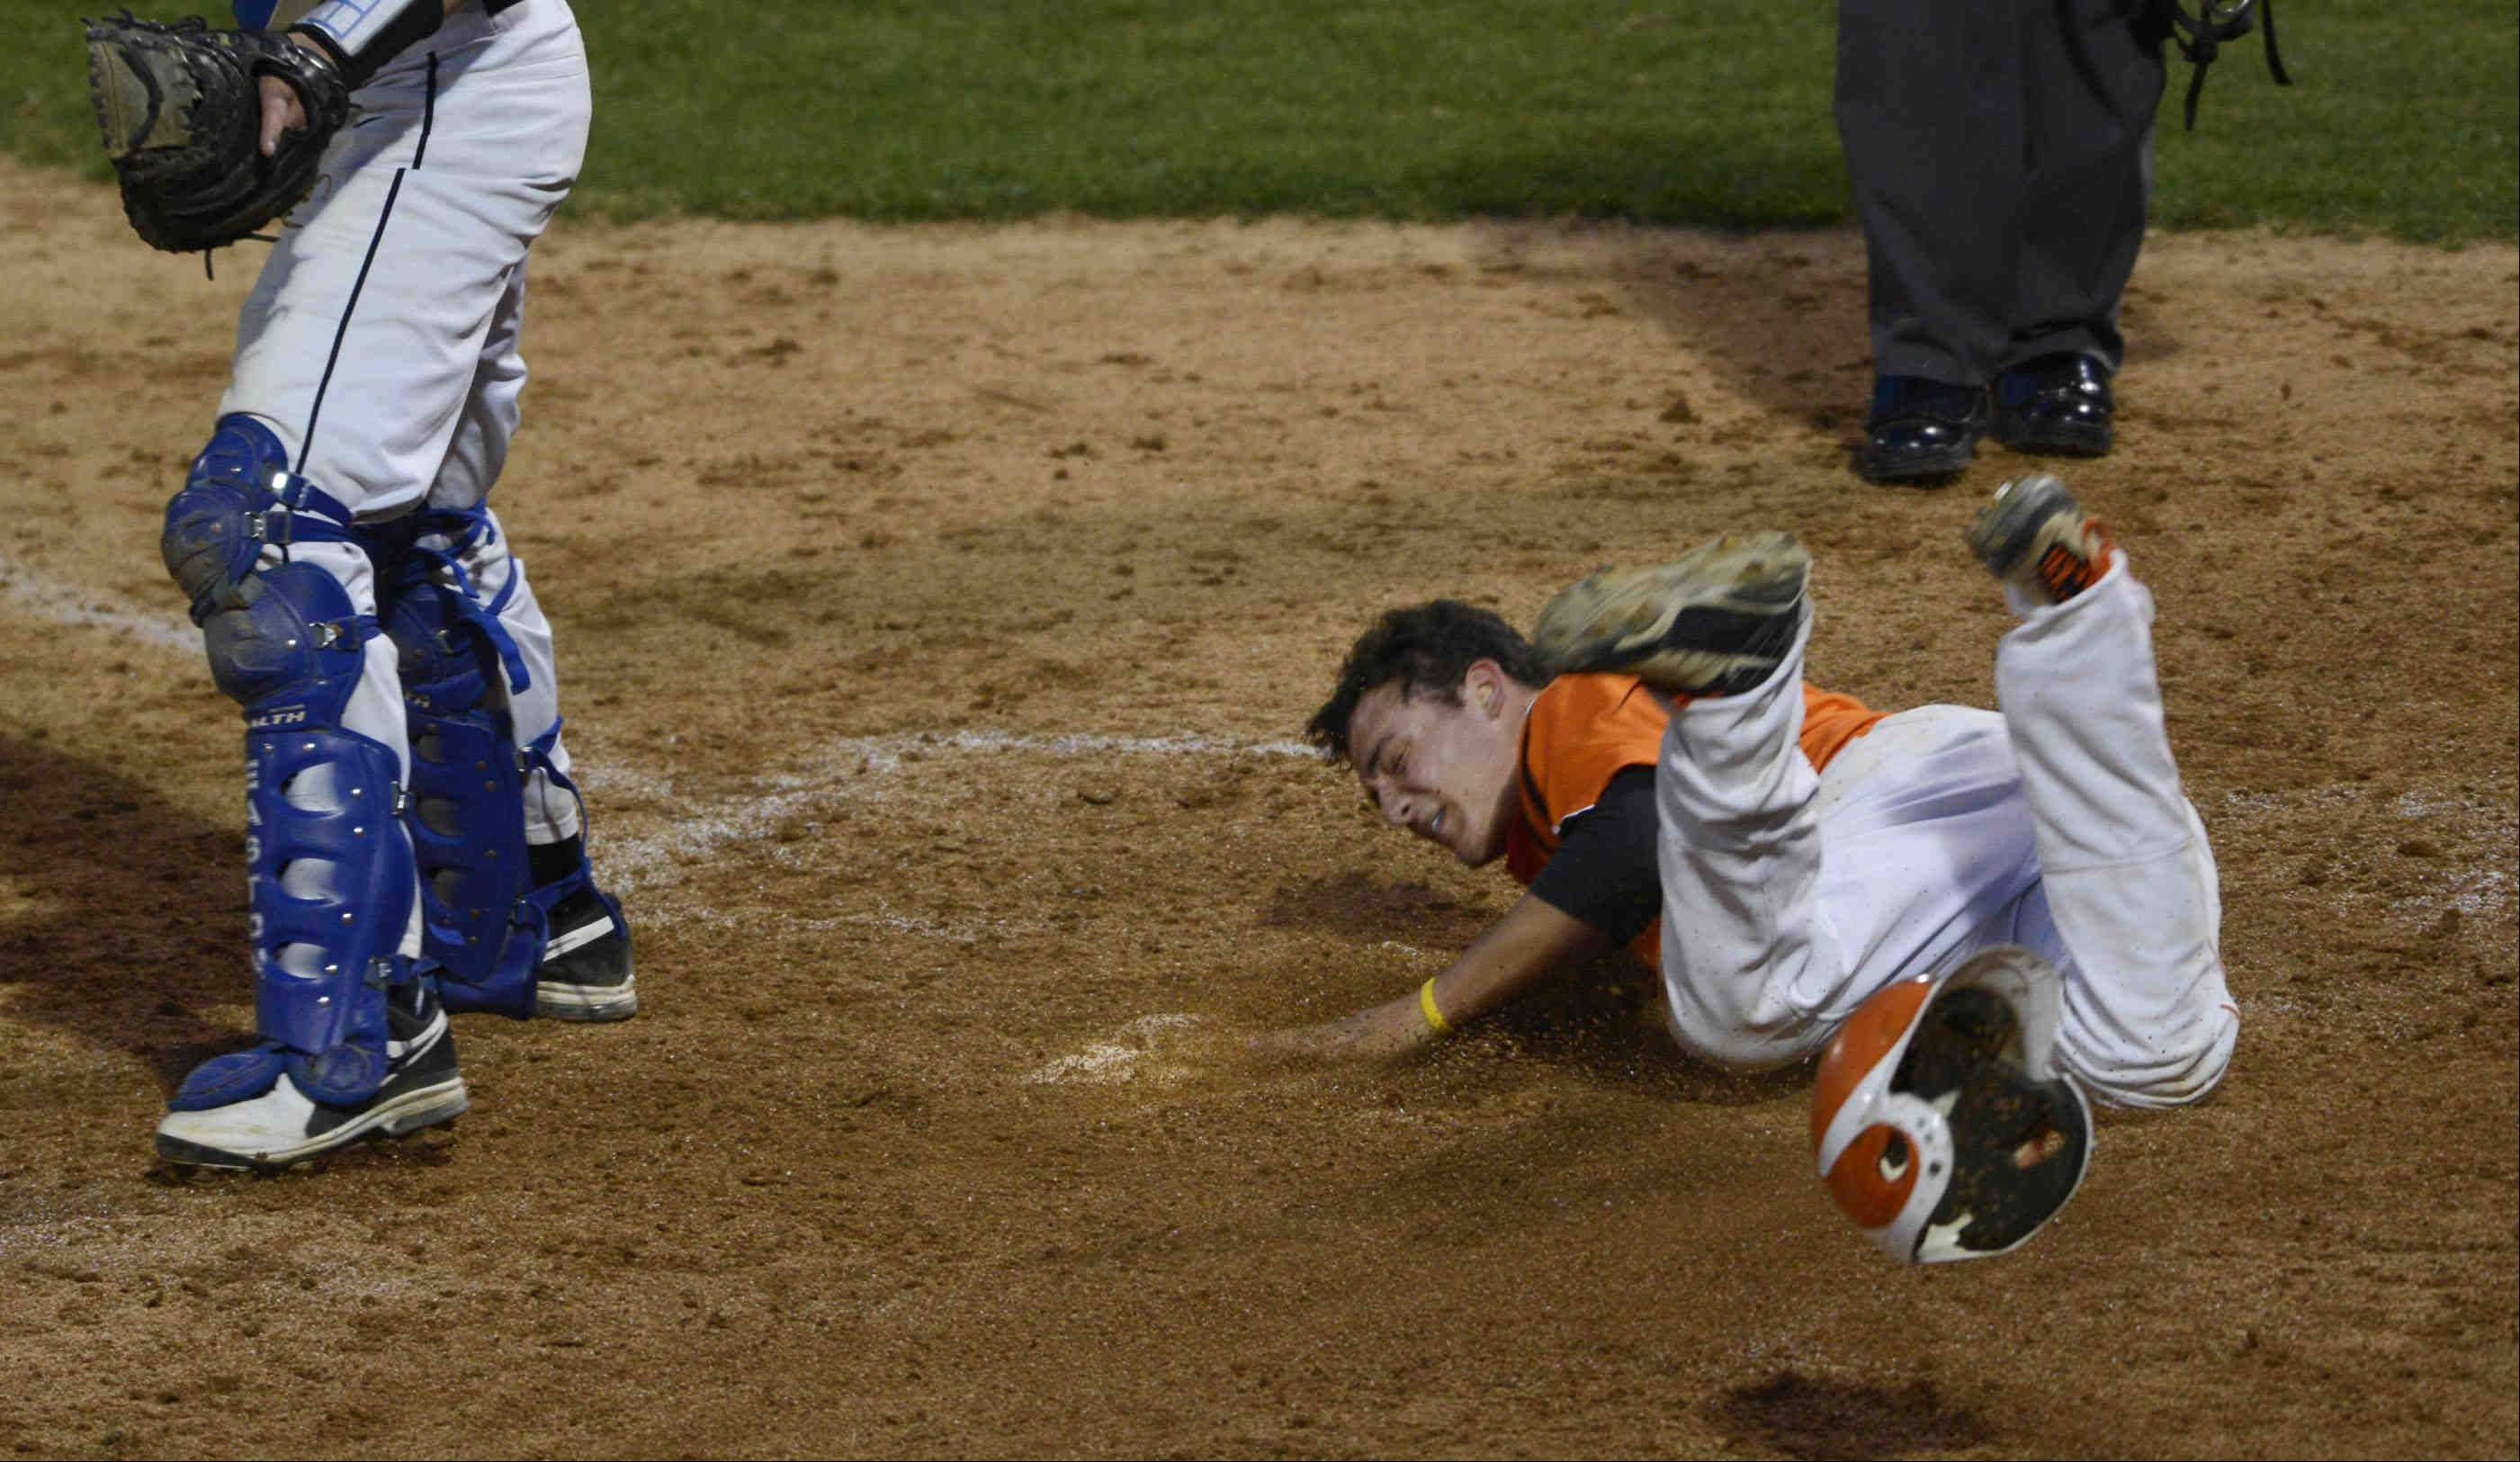 St. Charles East's Anthony Sciarrino slides over home plate during Monday's game against St. Charles North.